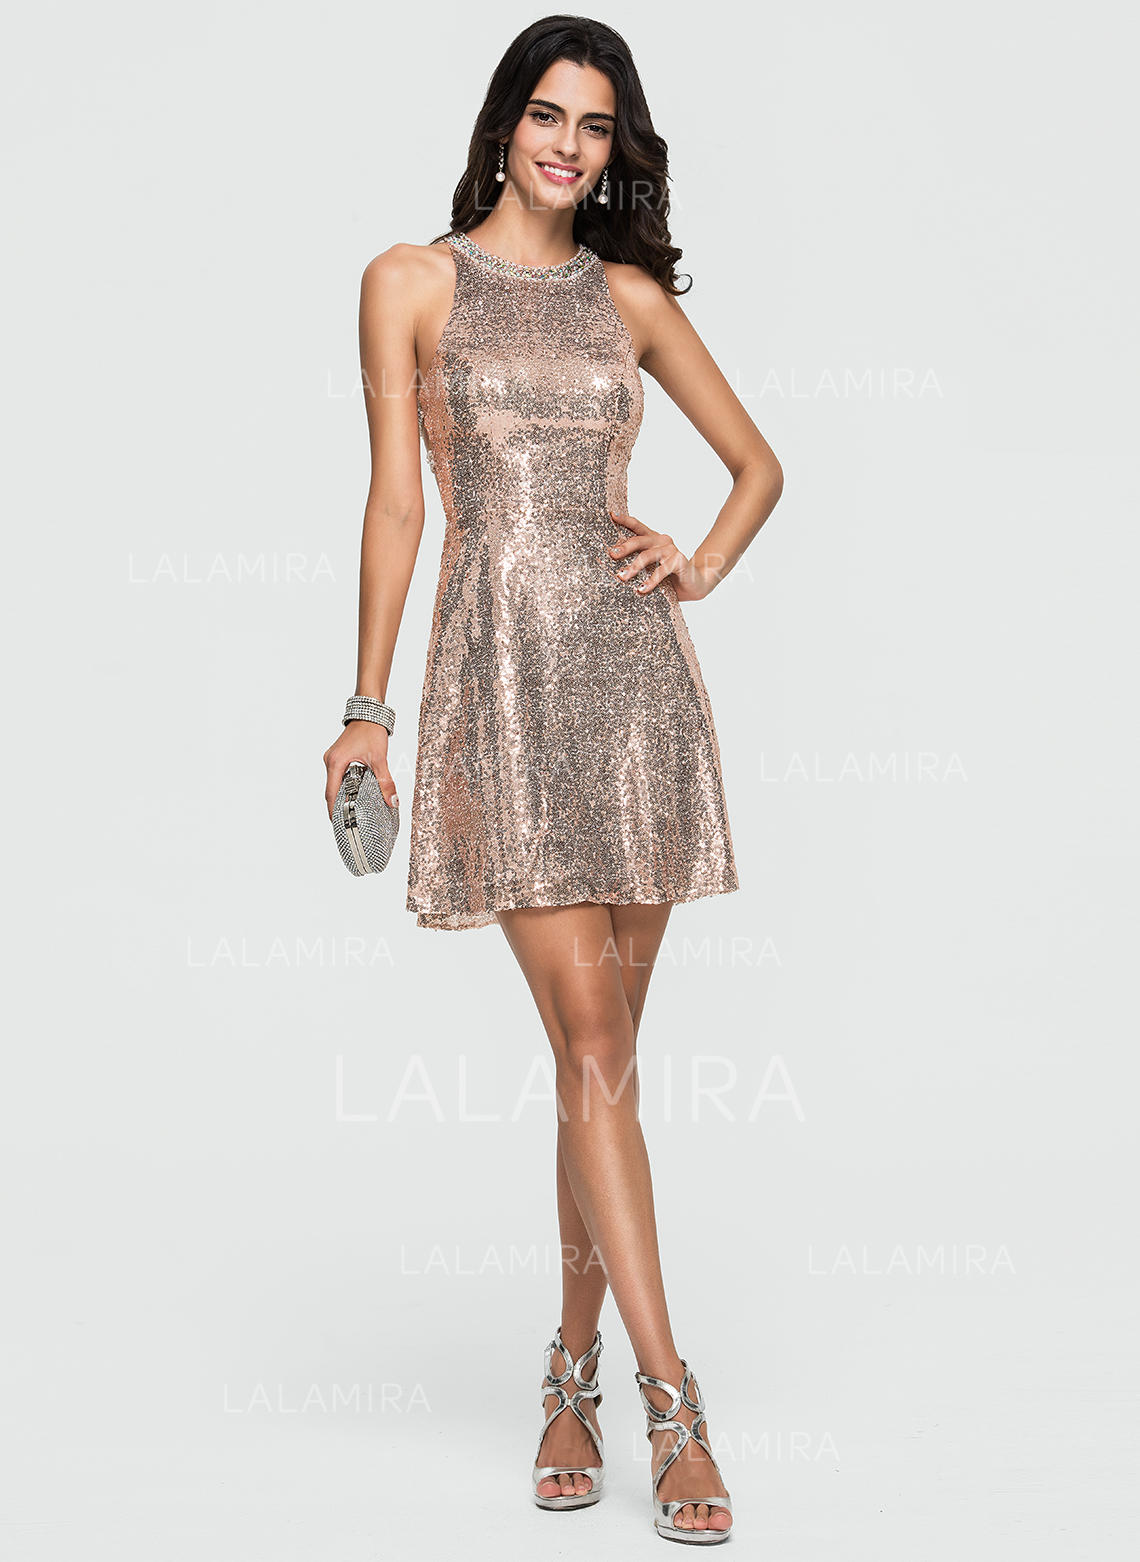 a5173bb8777 Short Tight Sparkly Prom Dress